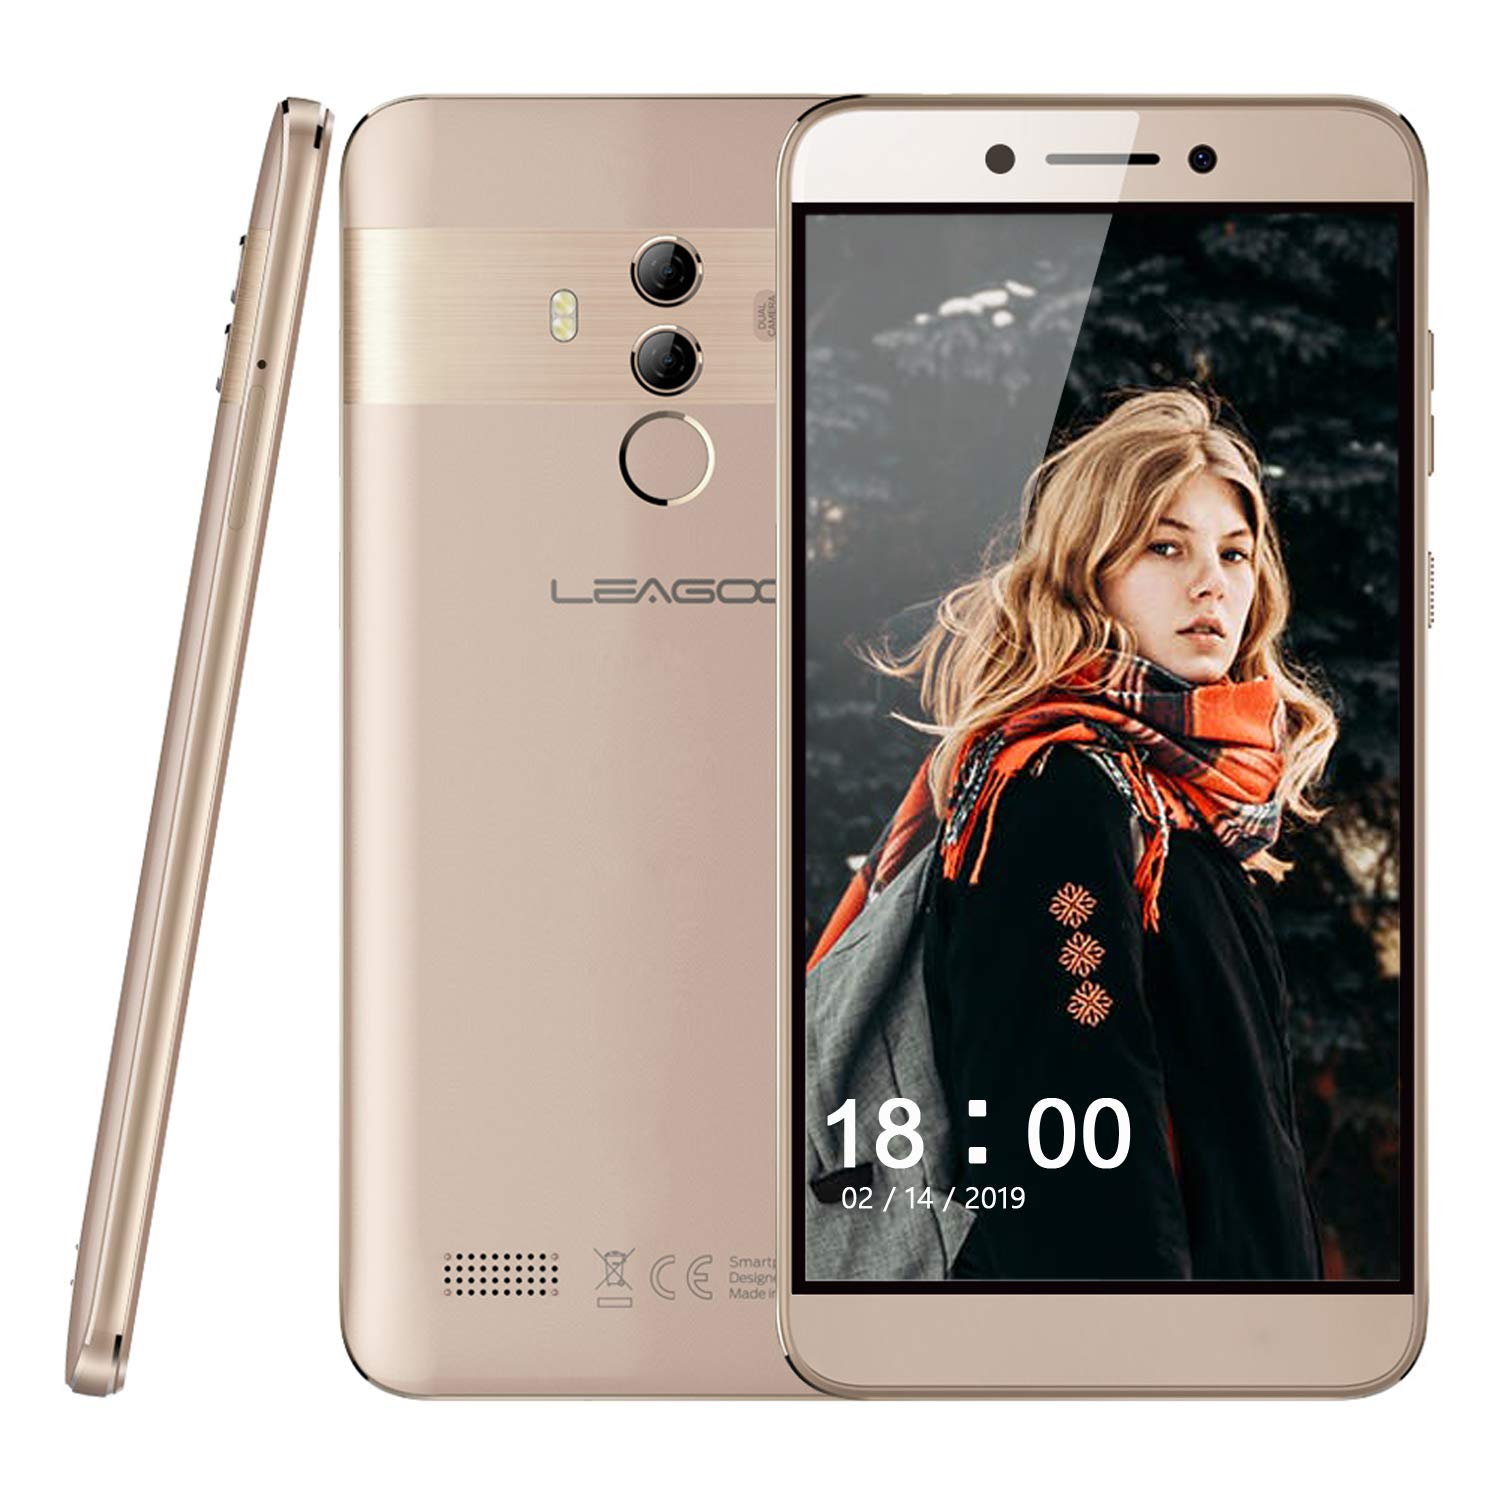 Leagoo T8s movil Libre, Smartphone de 5.5